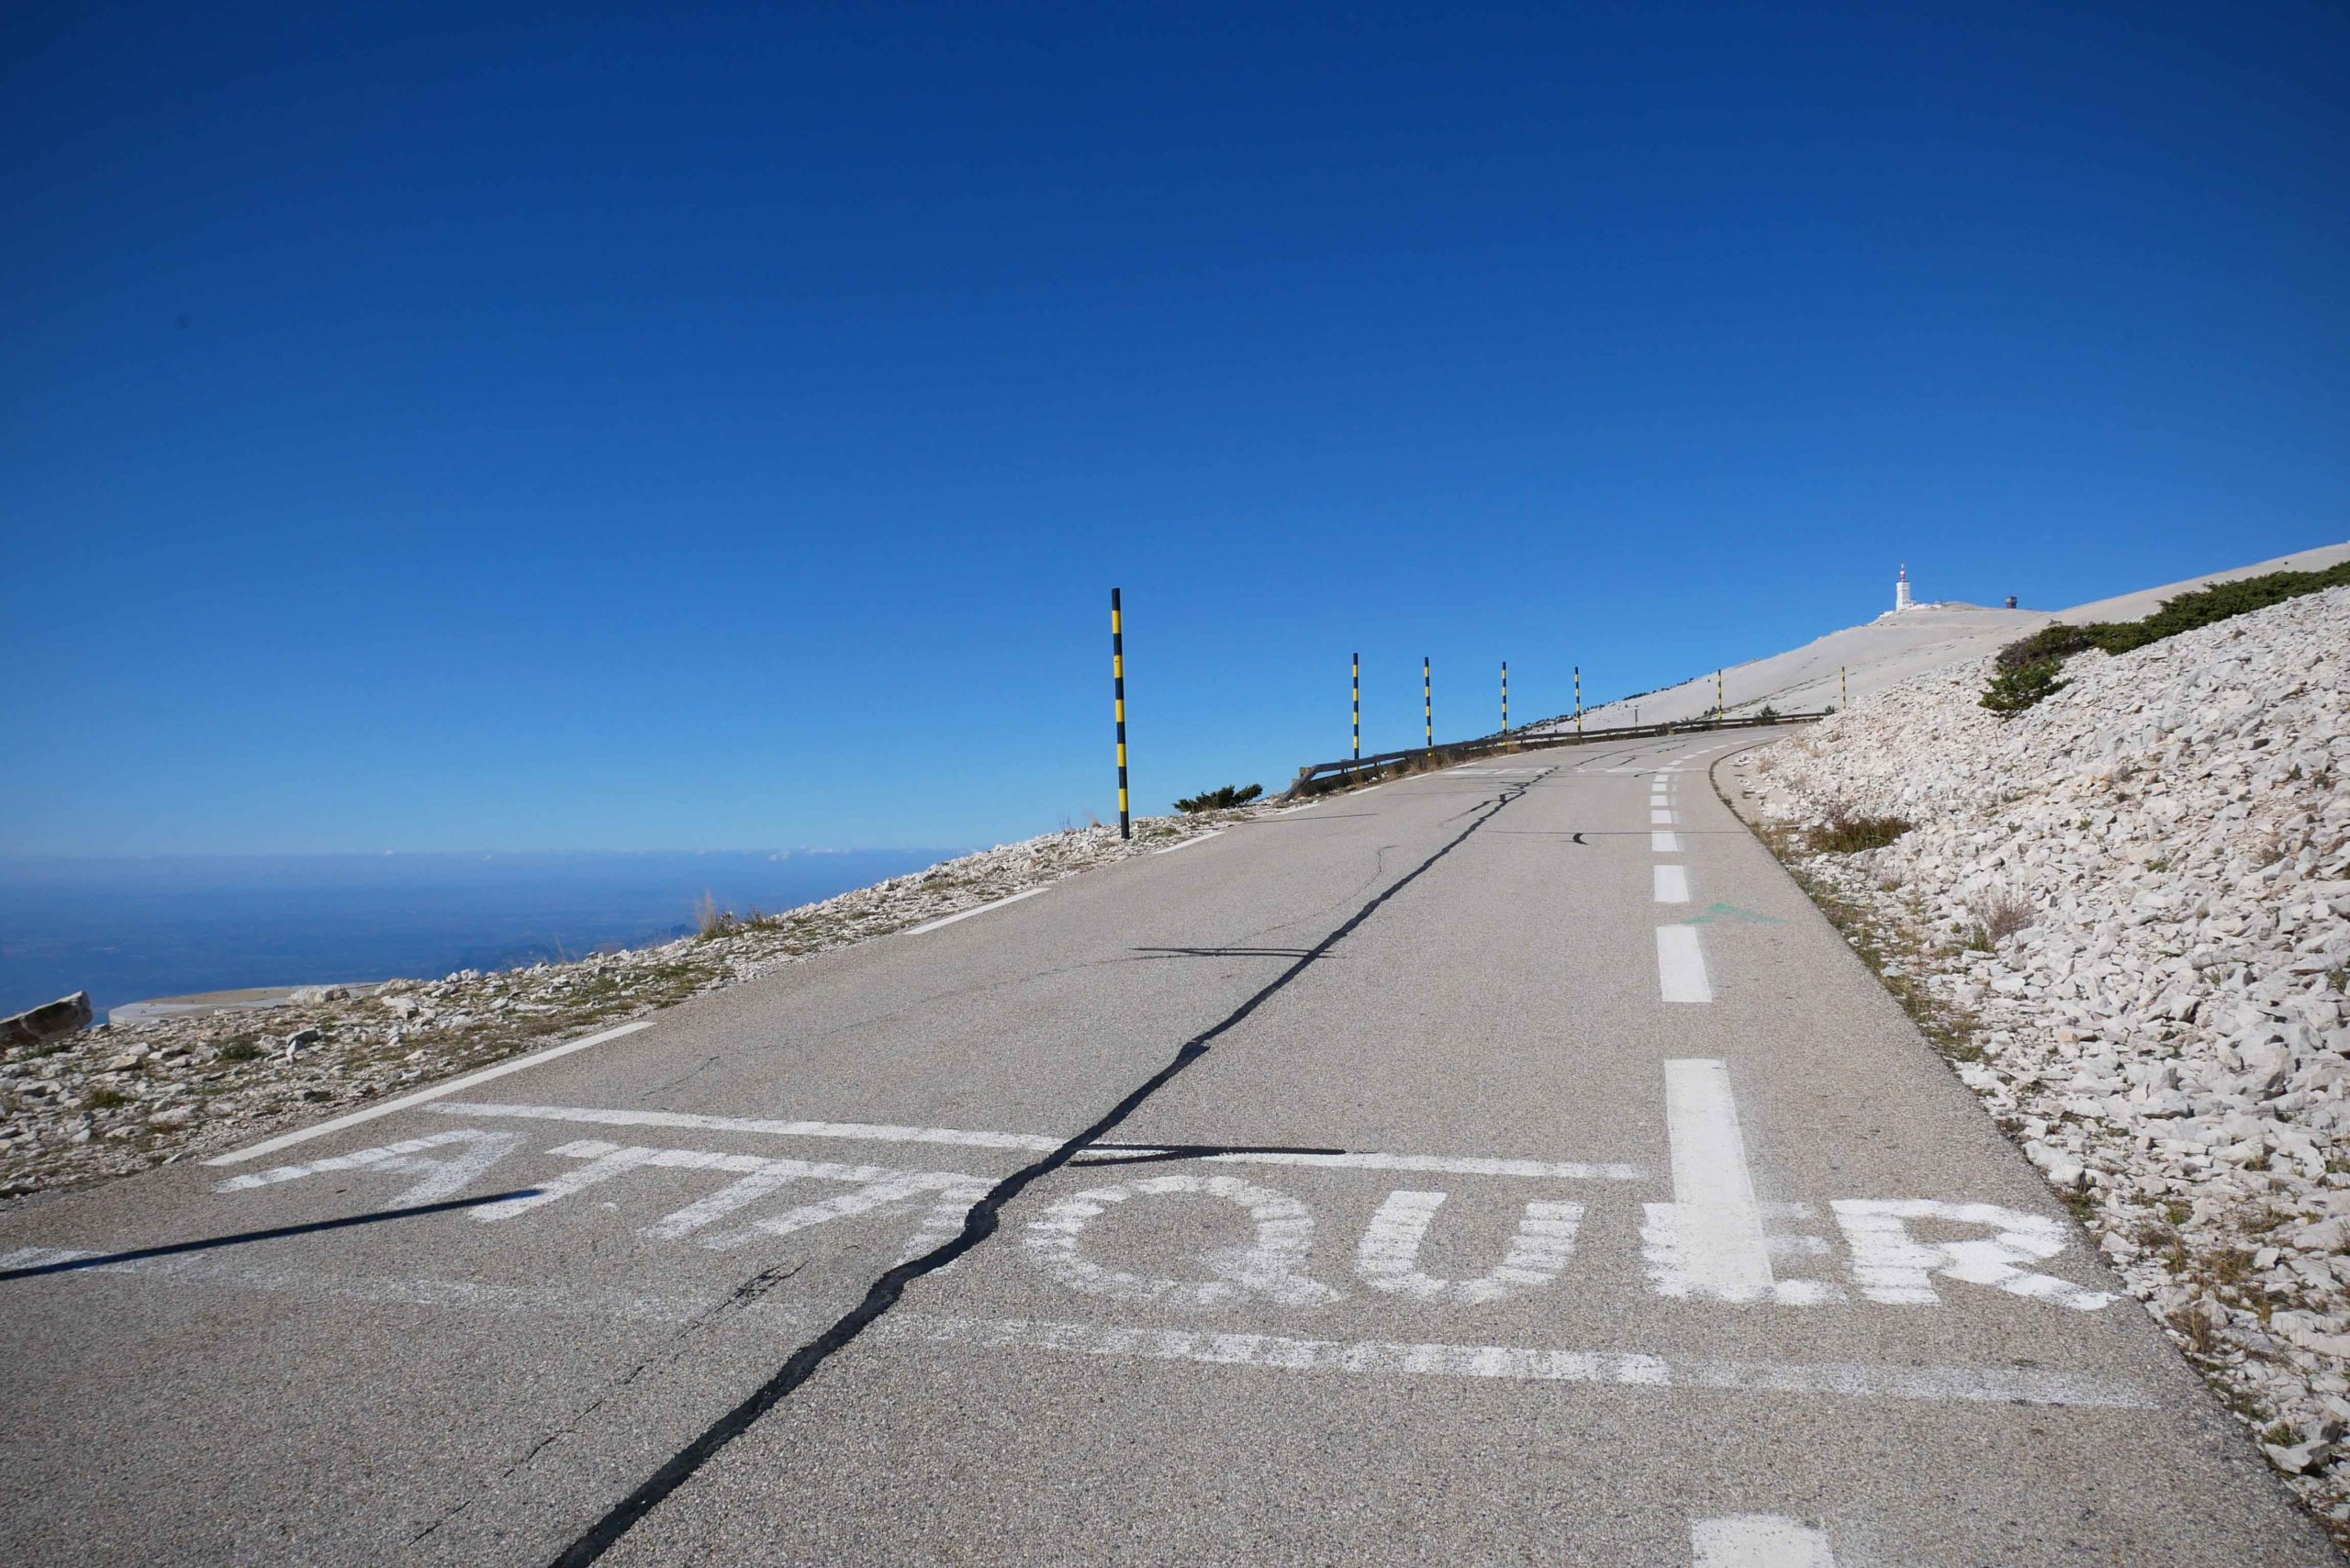 ascension du ventoux à vélo